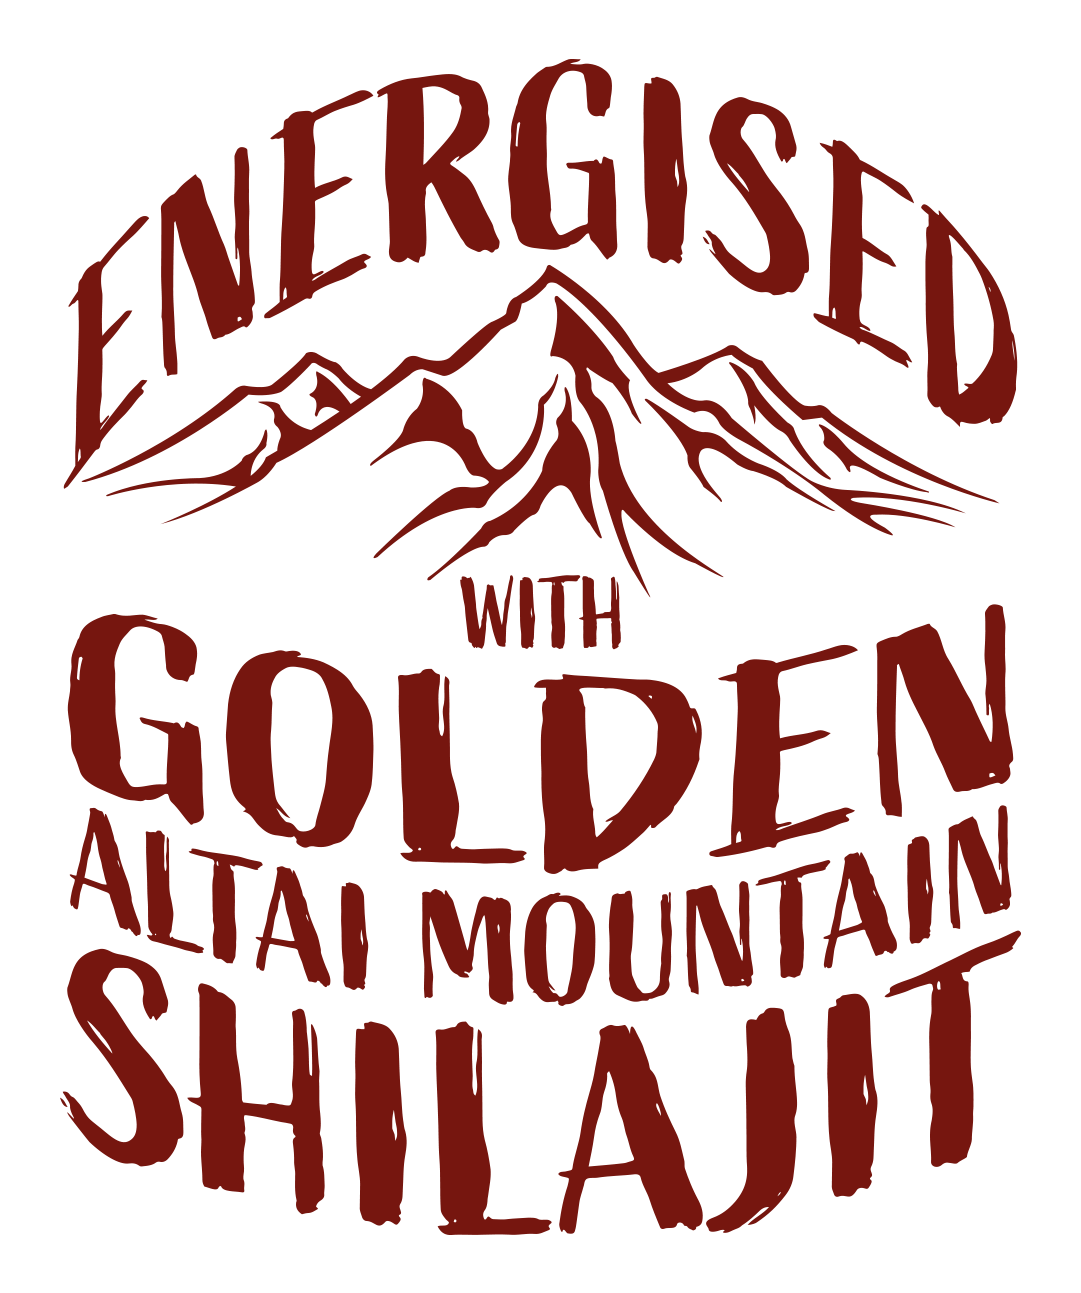 Energised with Golden Altai Mountain Shilajit Logo